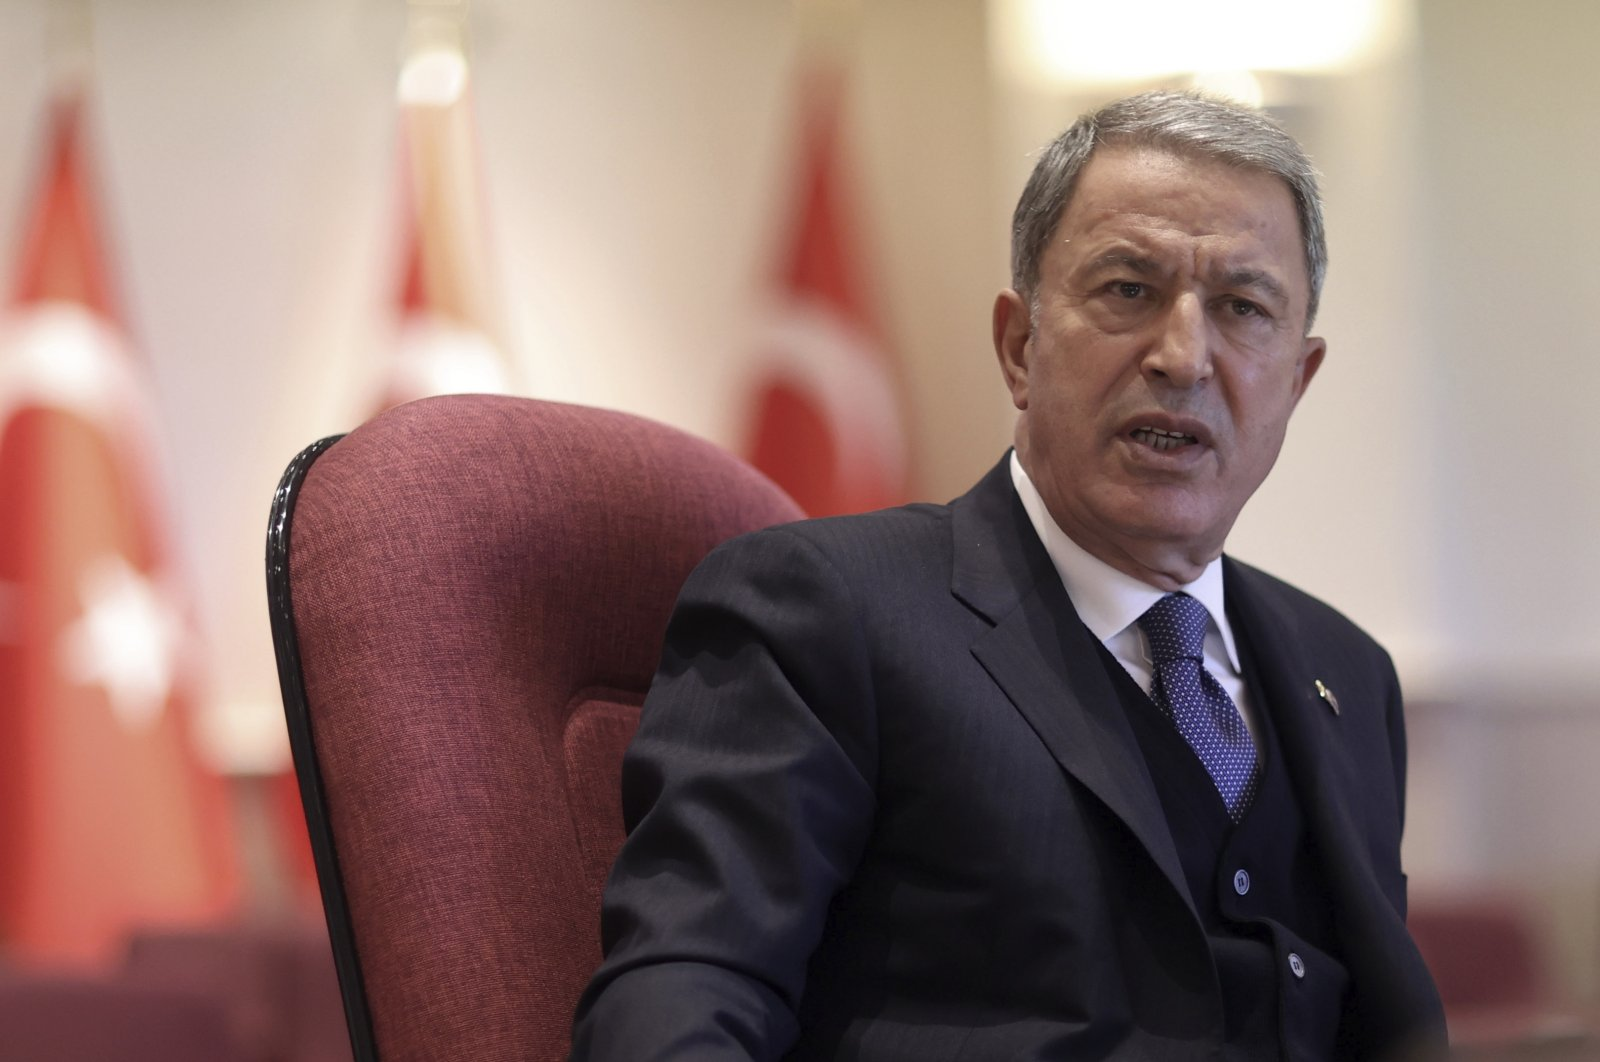 Turkish Defense Minister Hulusi Akar speaks during a news conference with a small group of journalists, in Ankara, Turkey, Jan. 13, 2021. (Defense Ministry via AP, Pool)